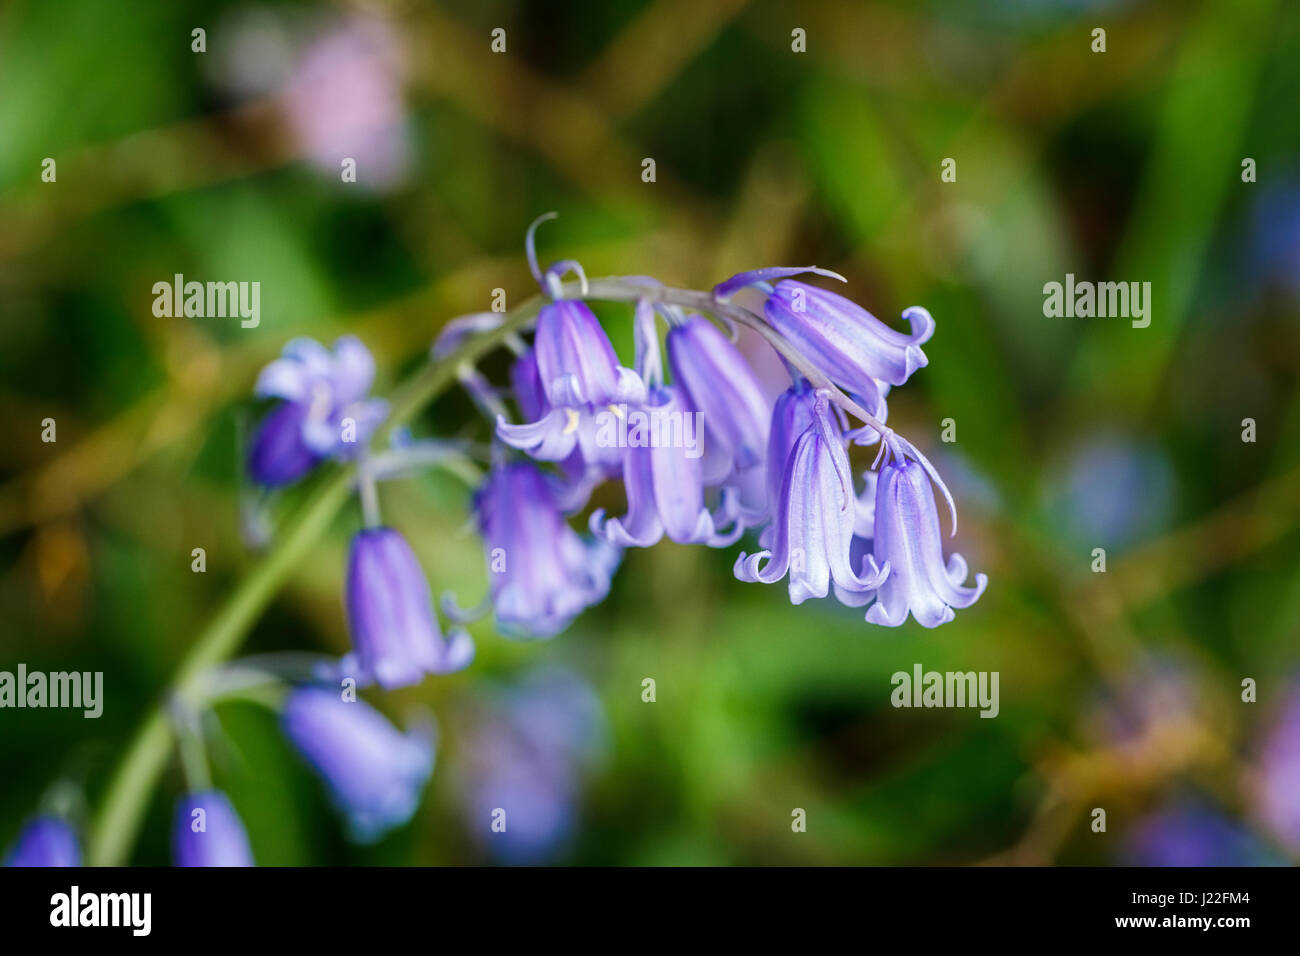 Inflorescence of tepals of Endymion non-scriptus, common English bluebell, flowering in a British garden in spring - Stock Image